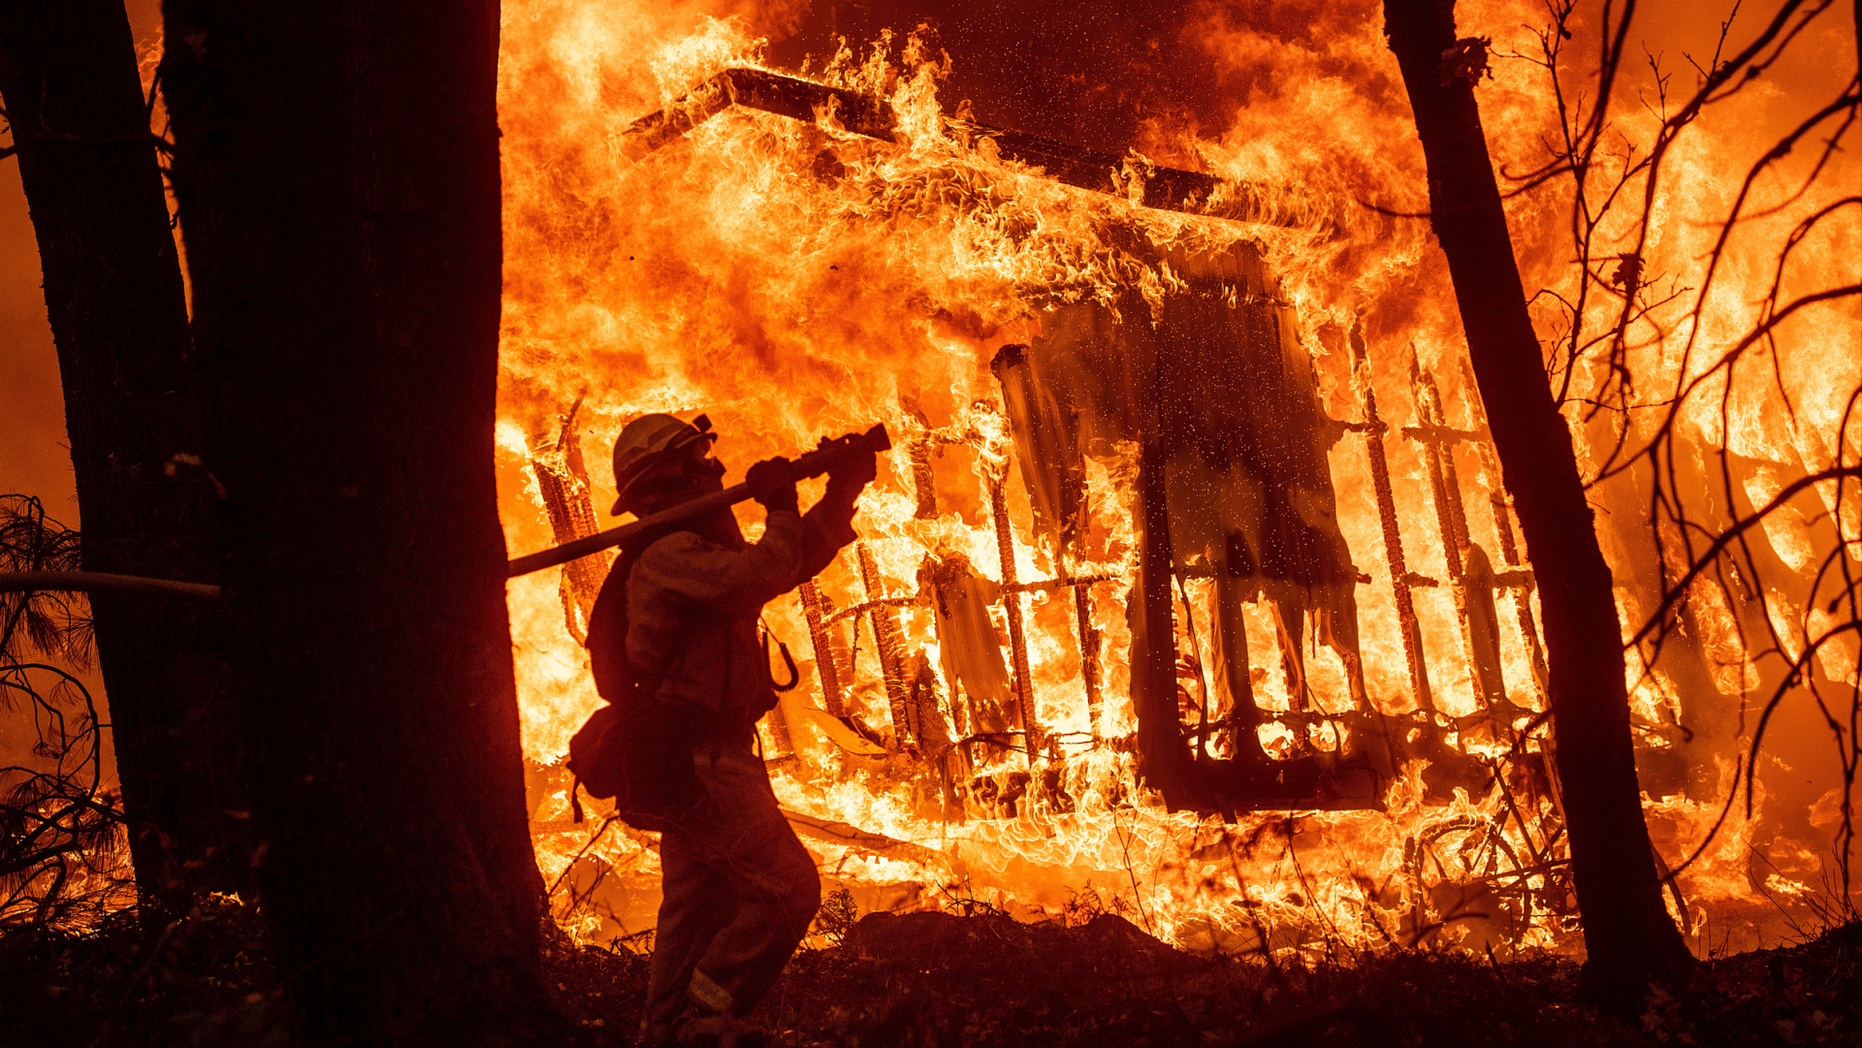 FILE - In this Nov. 9, 2018 file photo, firefighter Jose Corona sprays water as flames from the Camp Fire consume a home in Magalia, Calif. Federal officials say an effort to develop a better fire shelter following the deaths of 19 wildland firefighters in Arizona six years ago has failed. Officials at the National Interagency Fire Center in Boise in a decision on Wednesday, May 15, 2019 say the current fire shelter developed in 2002 will remain in use, saying the current shelter combines the most practical level of protection balanced against weight, bulk and durability. (AP Photo/Noah Berger, File)